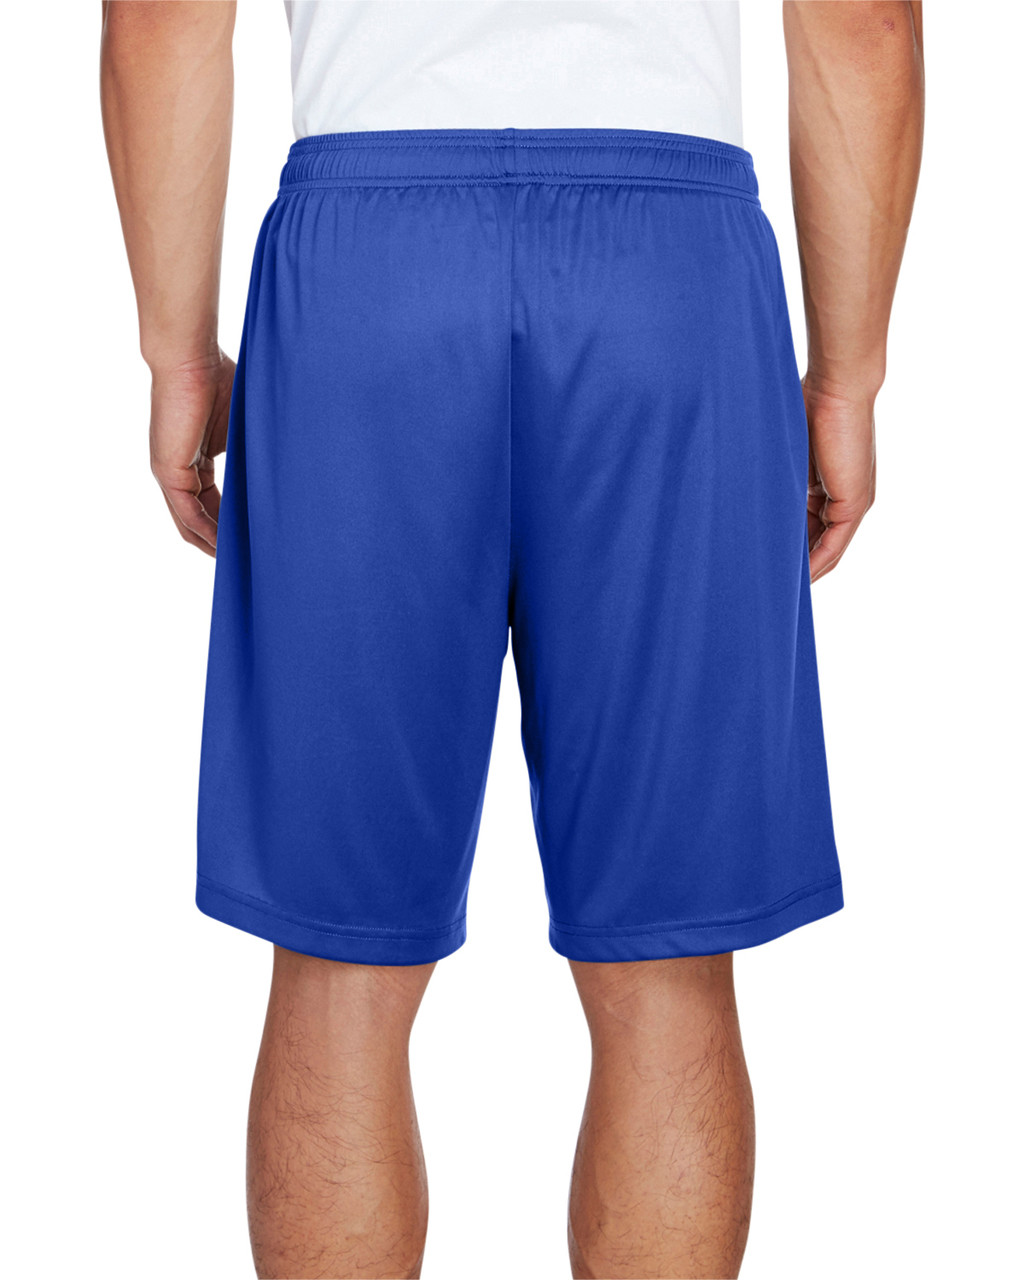 Sport Royal - Back, TT11SH Team 365 Men's Zone Performance Short | BlankClothing.ca